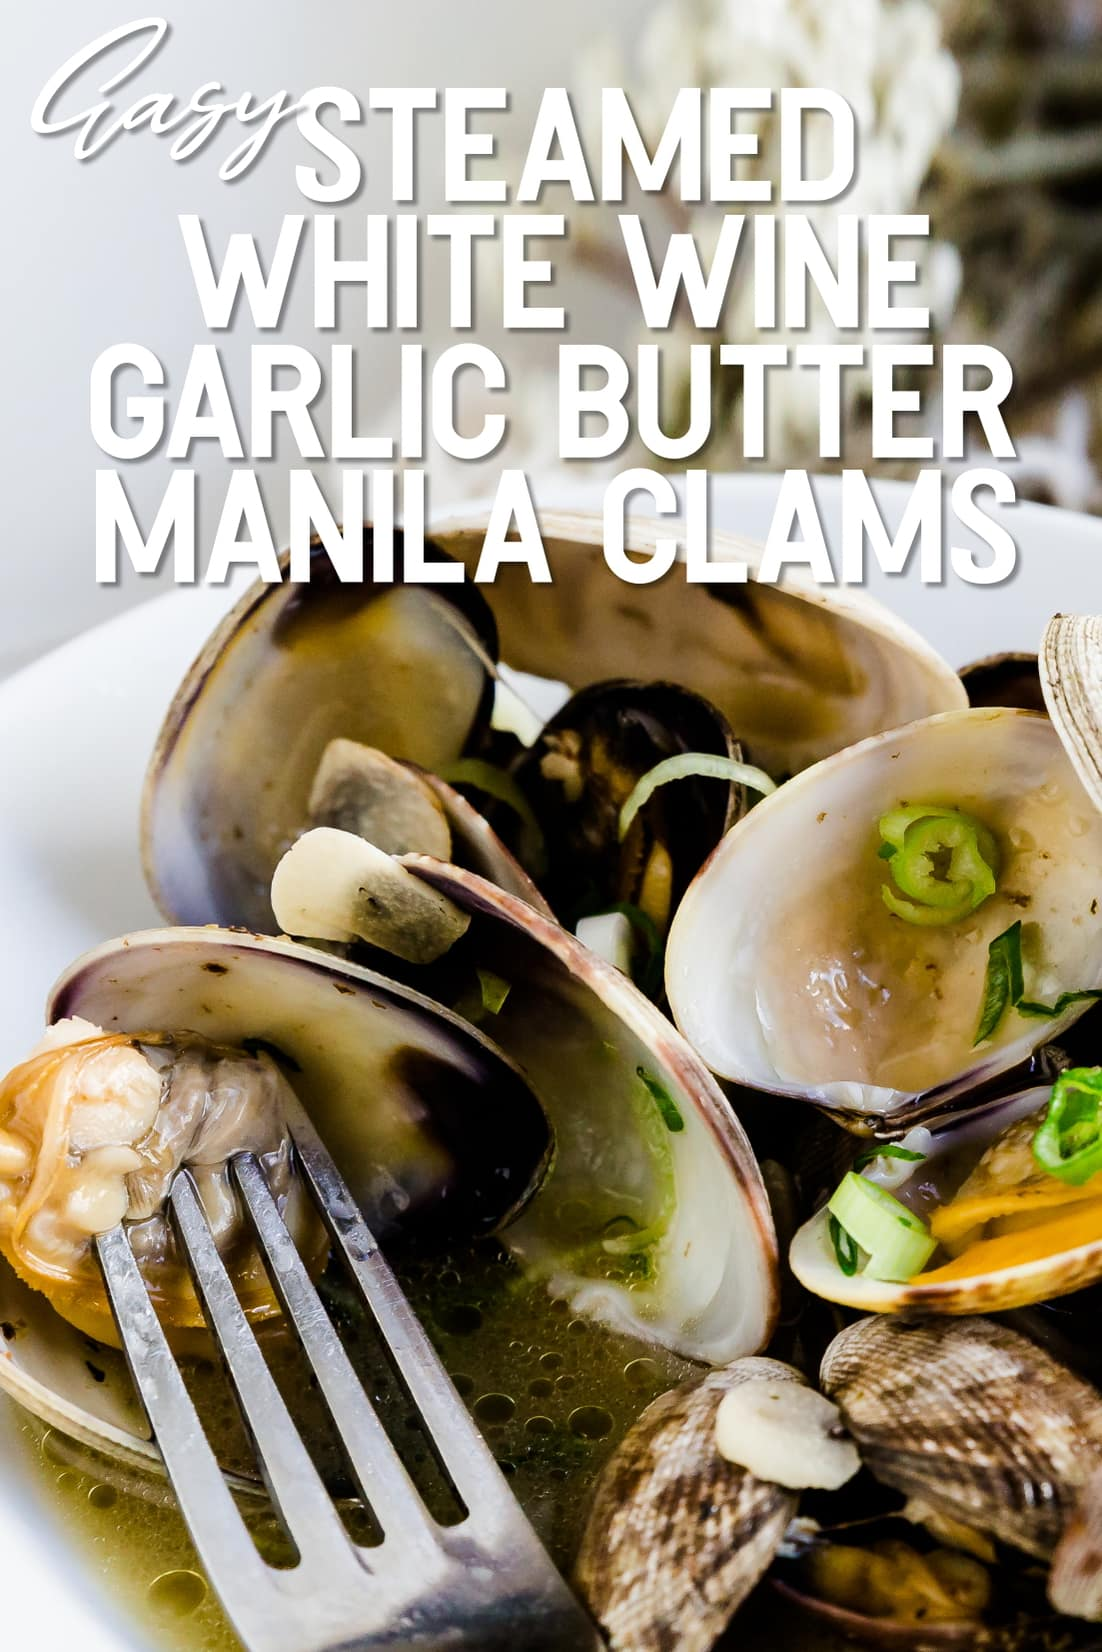 Steamed White Wine Garlic Butter Manila Clams being picked up by a fork